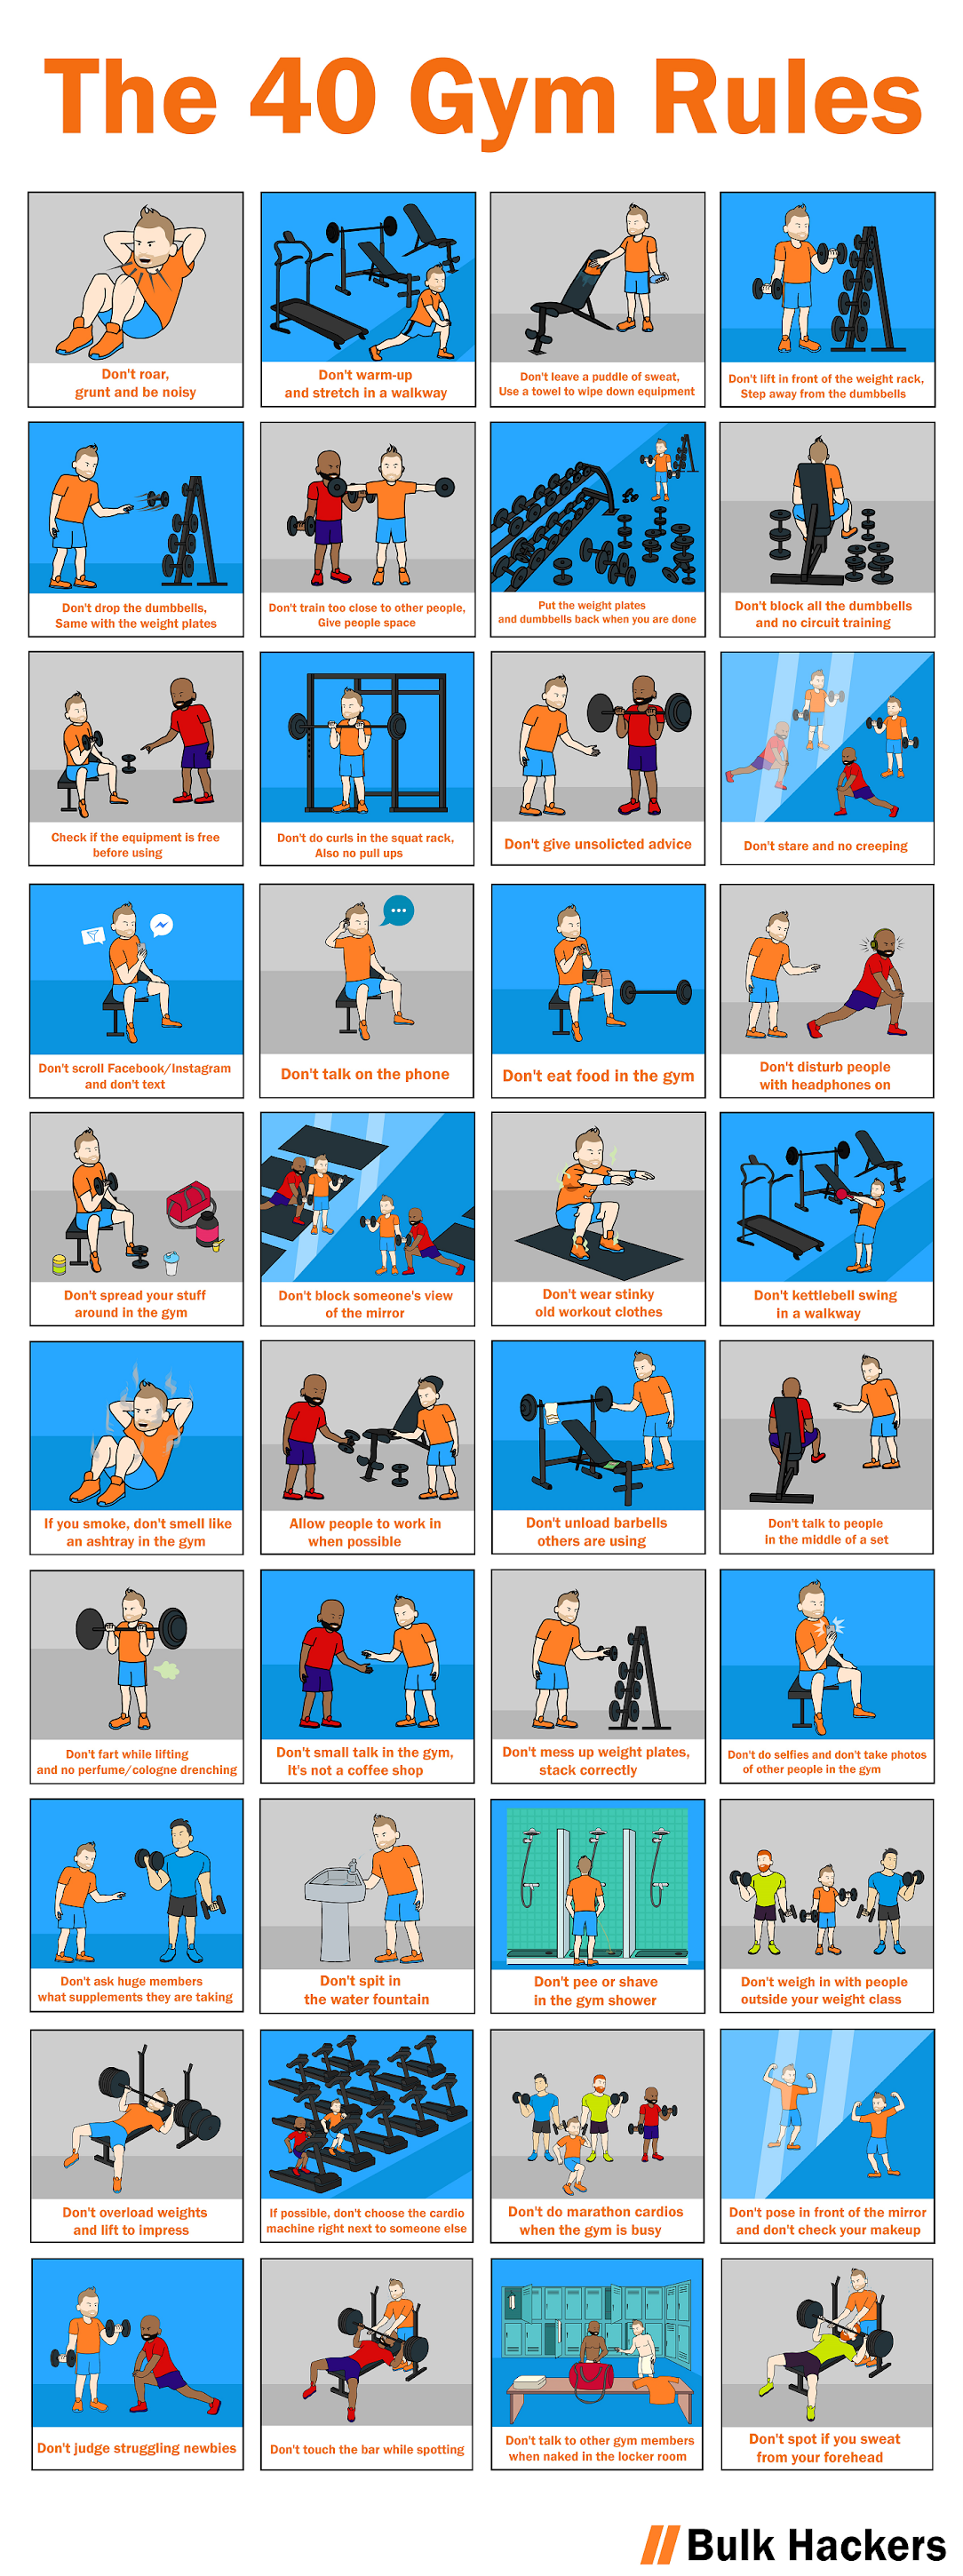 The 40 Gym Rules